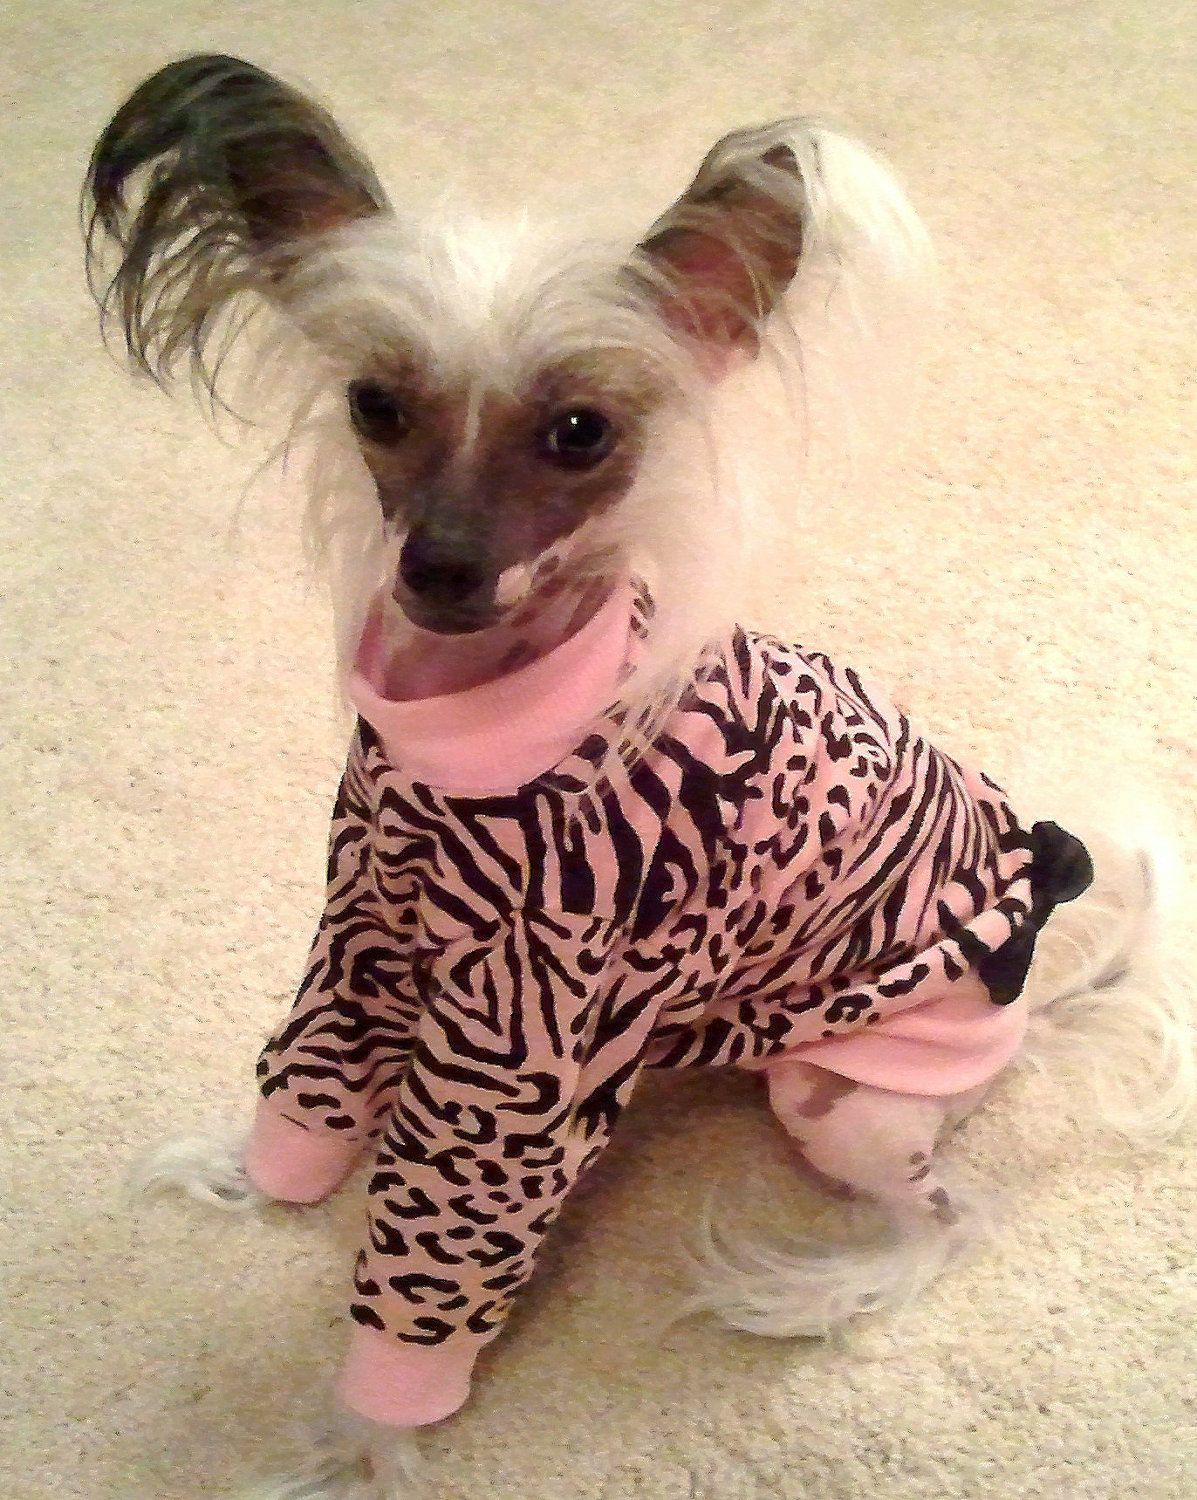 Pet Clothing Shirt Dress To Order 23 00 Via Etsy Tiere In